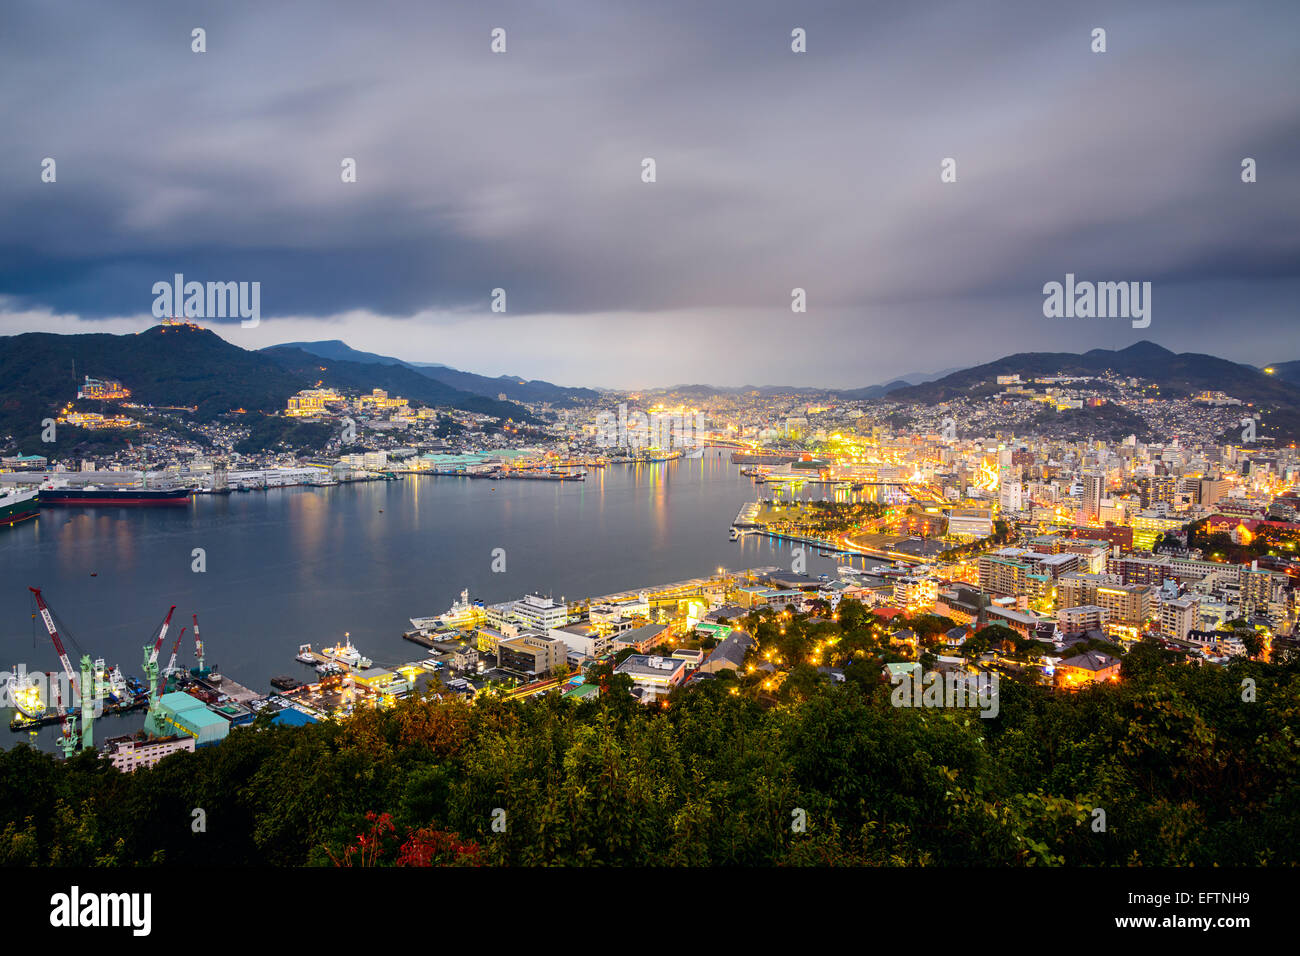 Nagasaki, Japan city skyline at the bay. - Stock Image